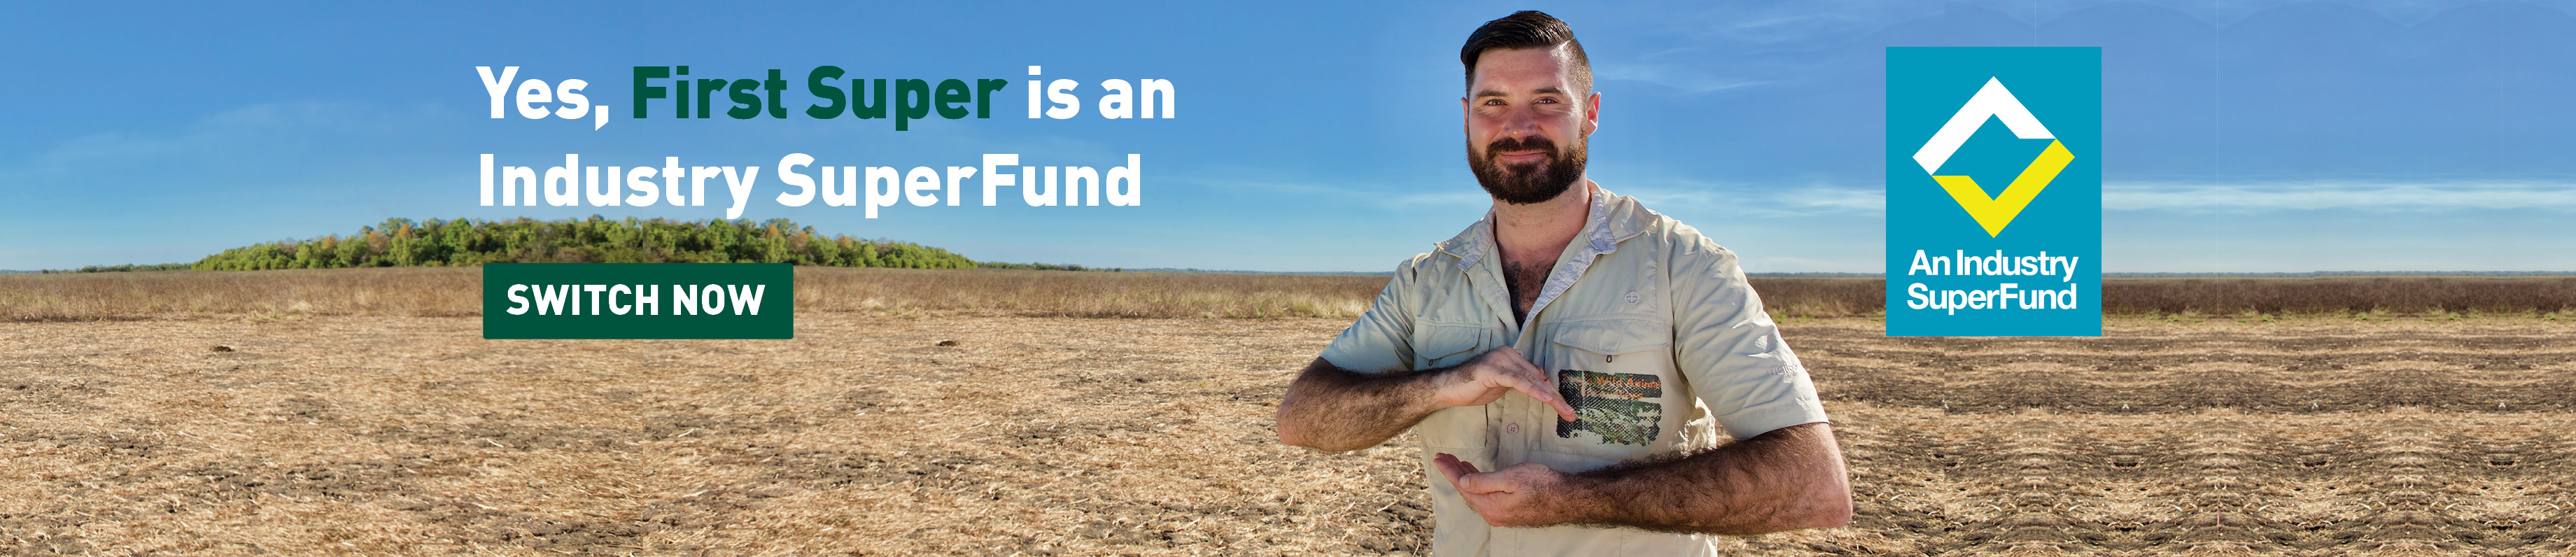 Web banner - Yes, we are an Industry Super Fund - FINAL 1 ...